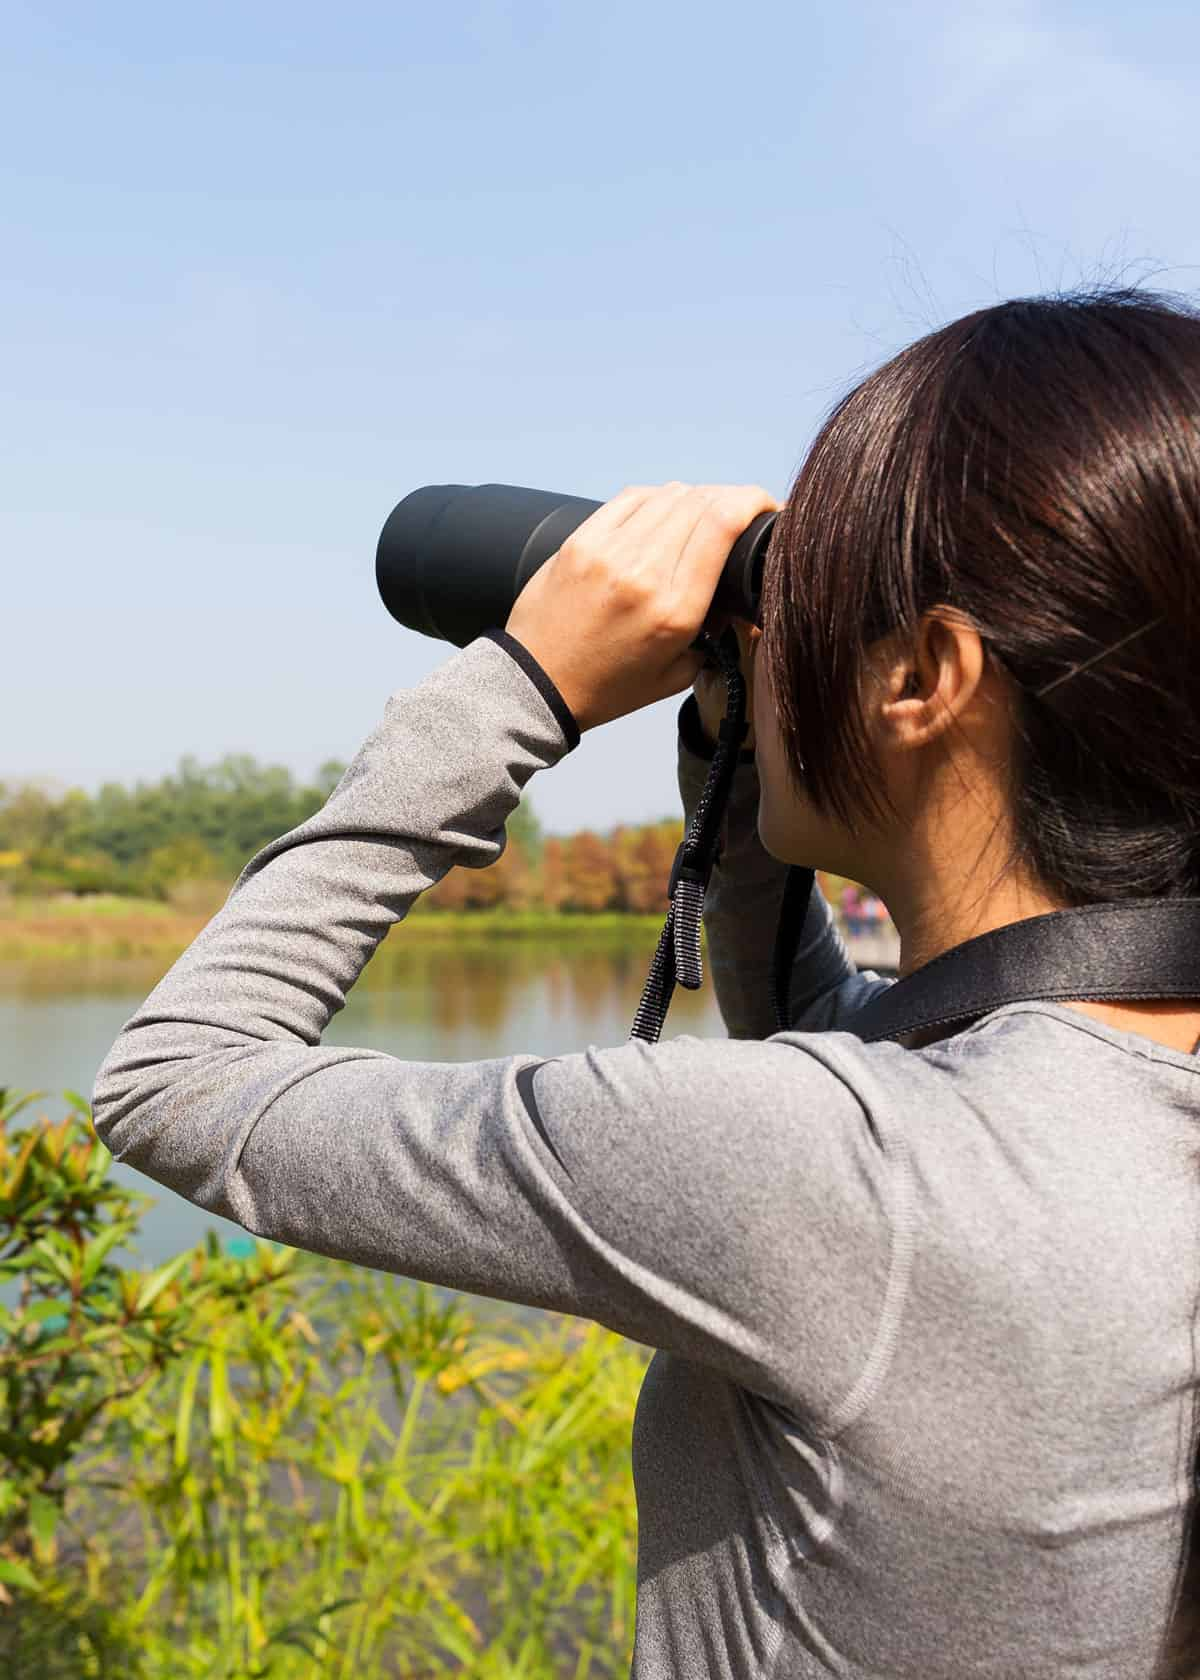 Gifts for bird watchers